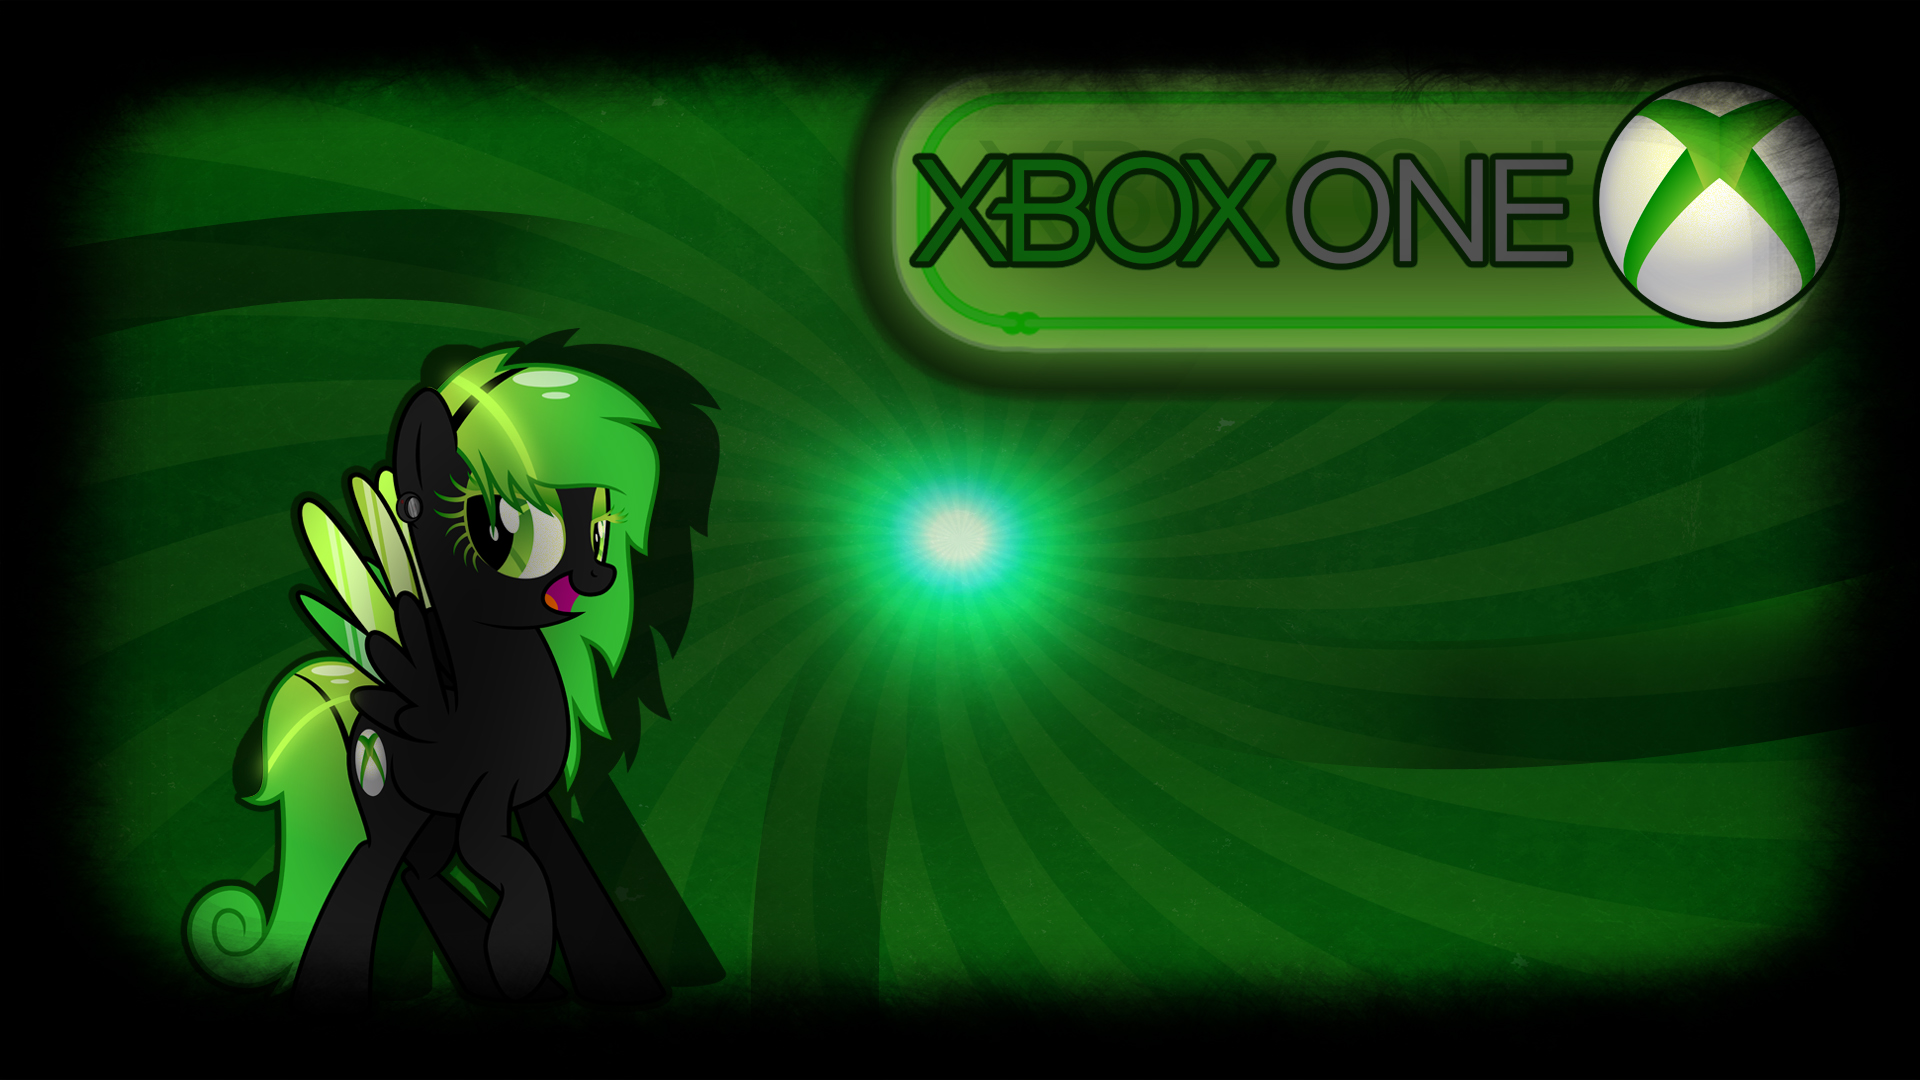 HD Xbox Wallpapers | Download Free - 921138